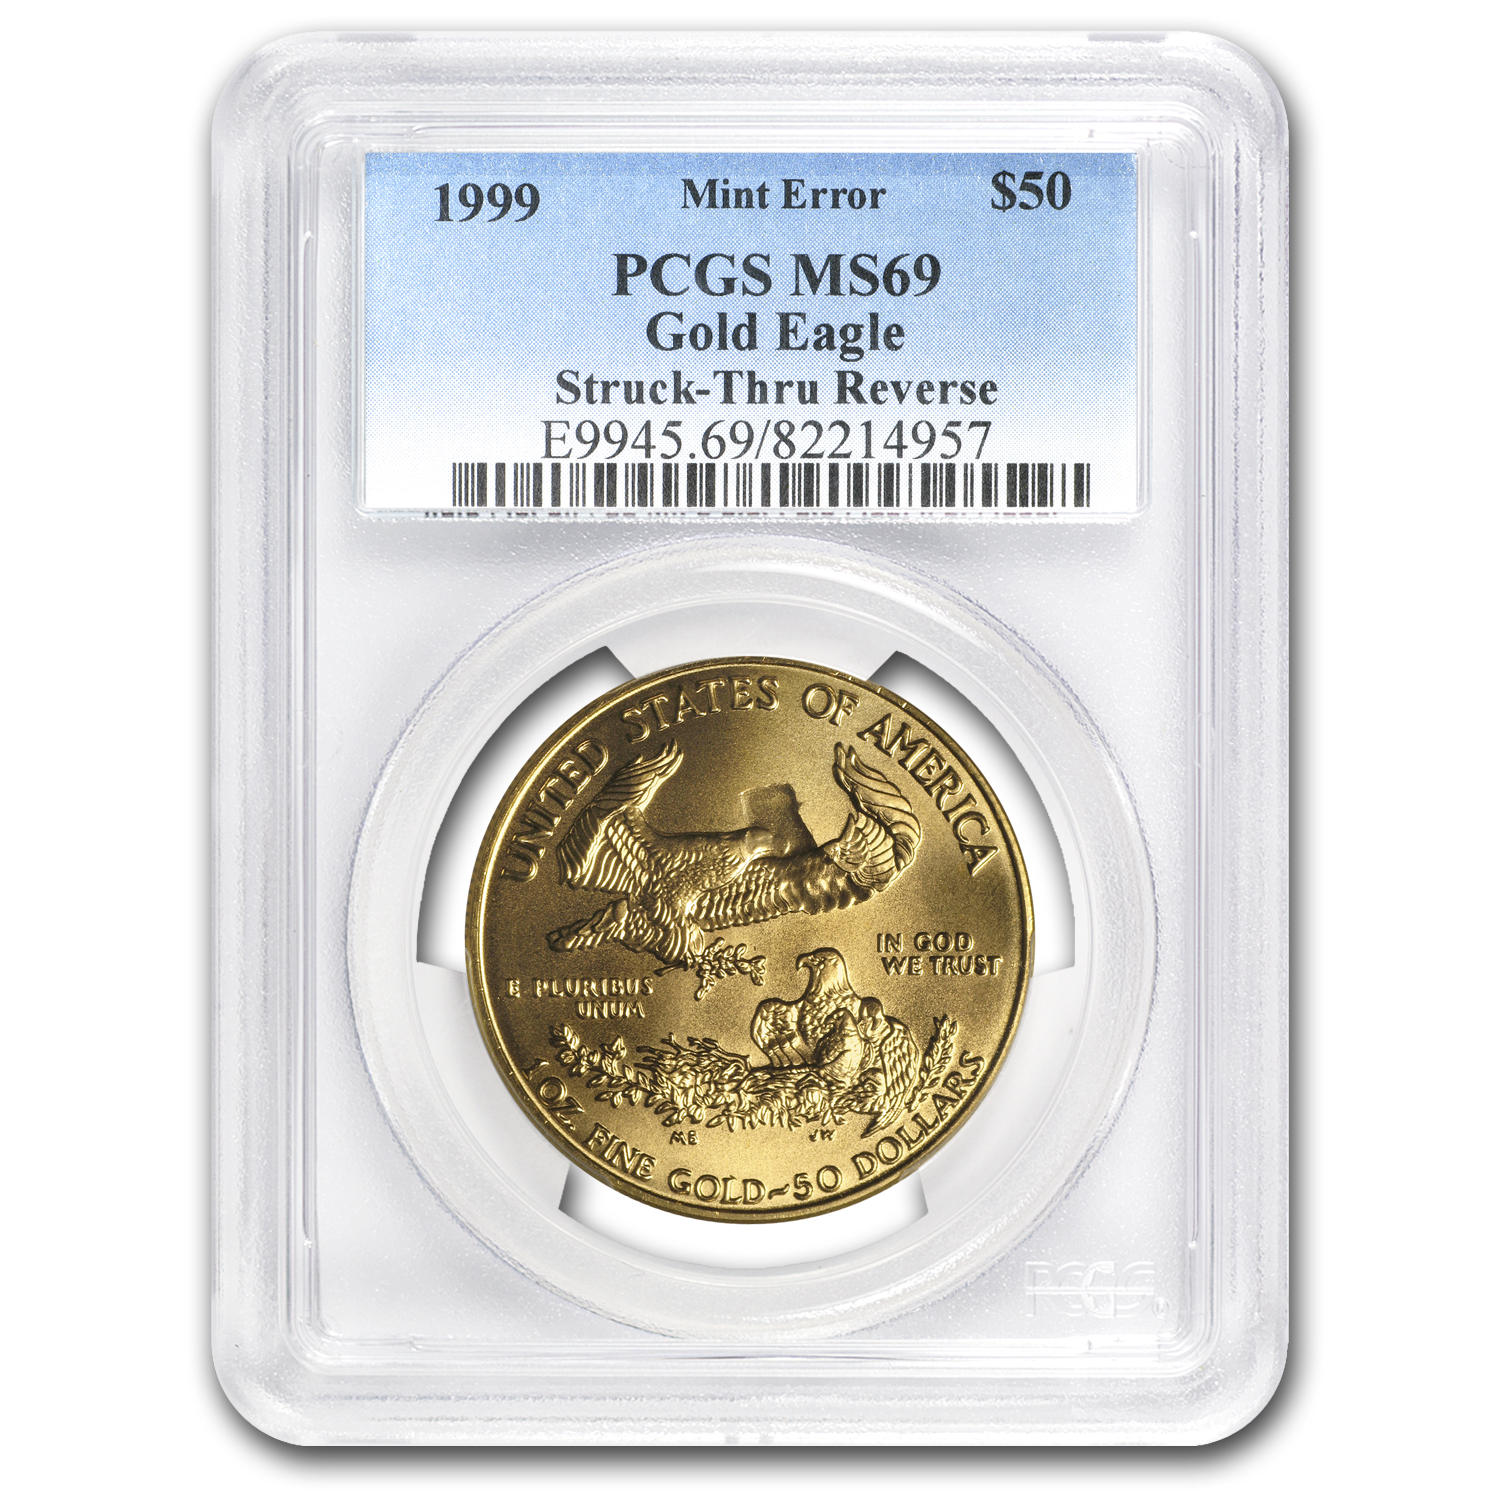 1999 1 oz Gold American Eagle MS-69 PCGS (Rev Mint Error)